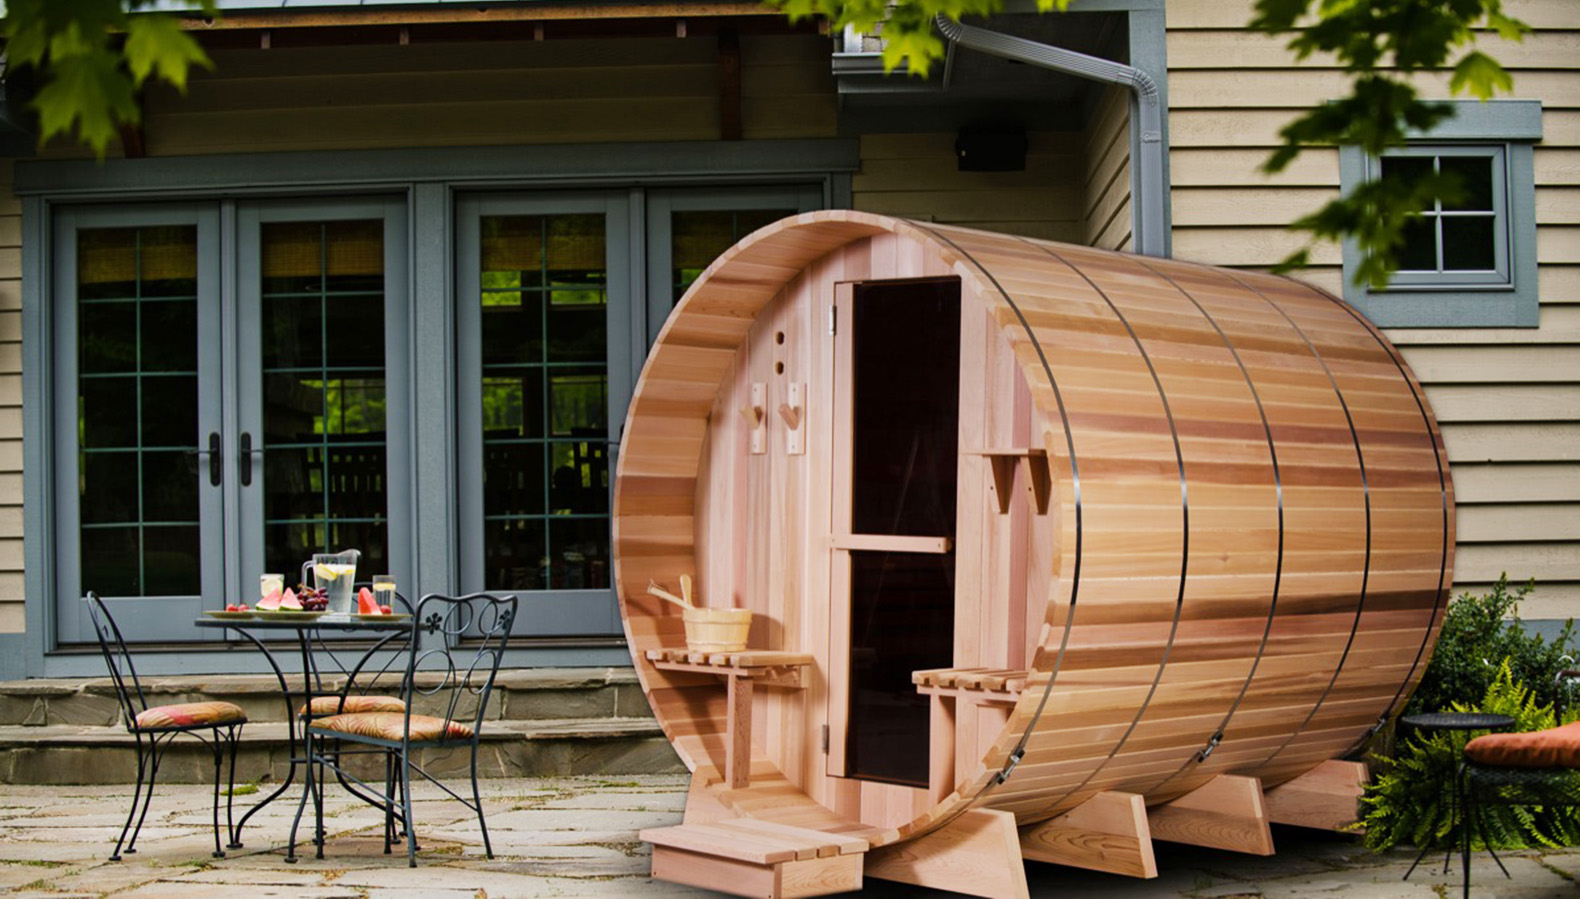 Sauna Outdoor The Grandview Barrel Sauna Is A Backyard Oasis For The ...